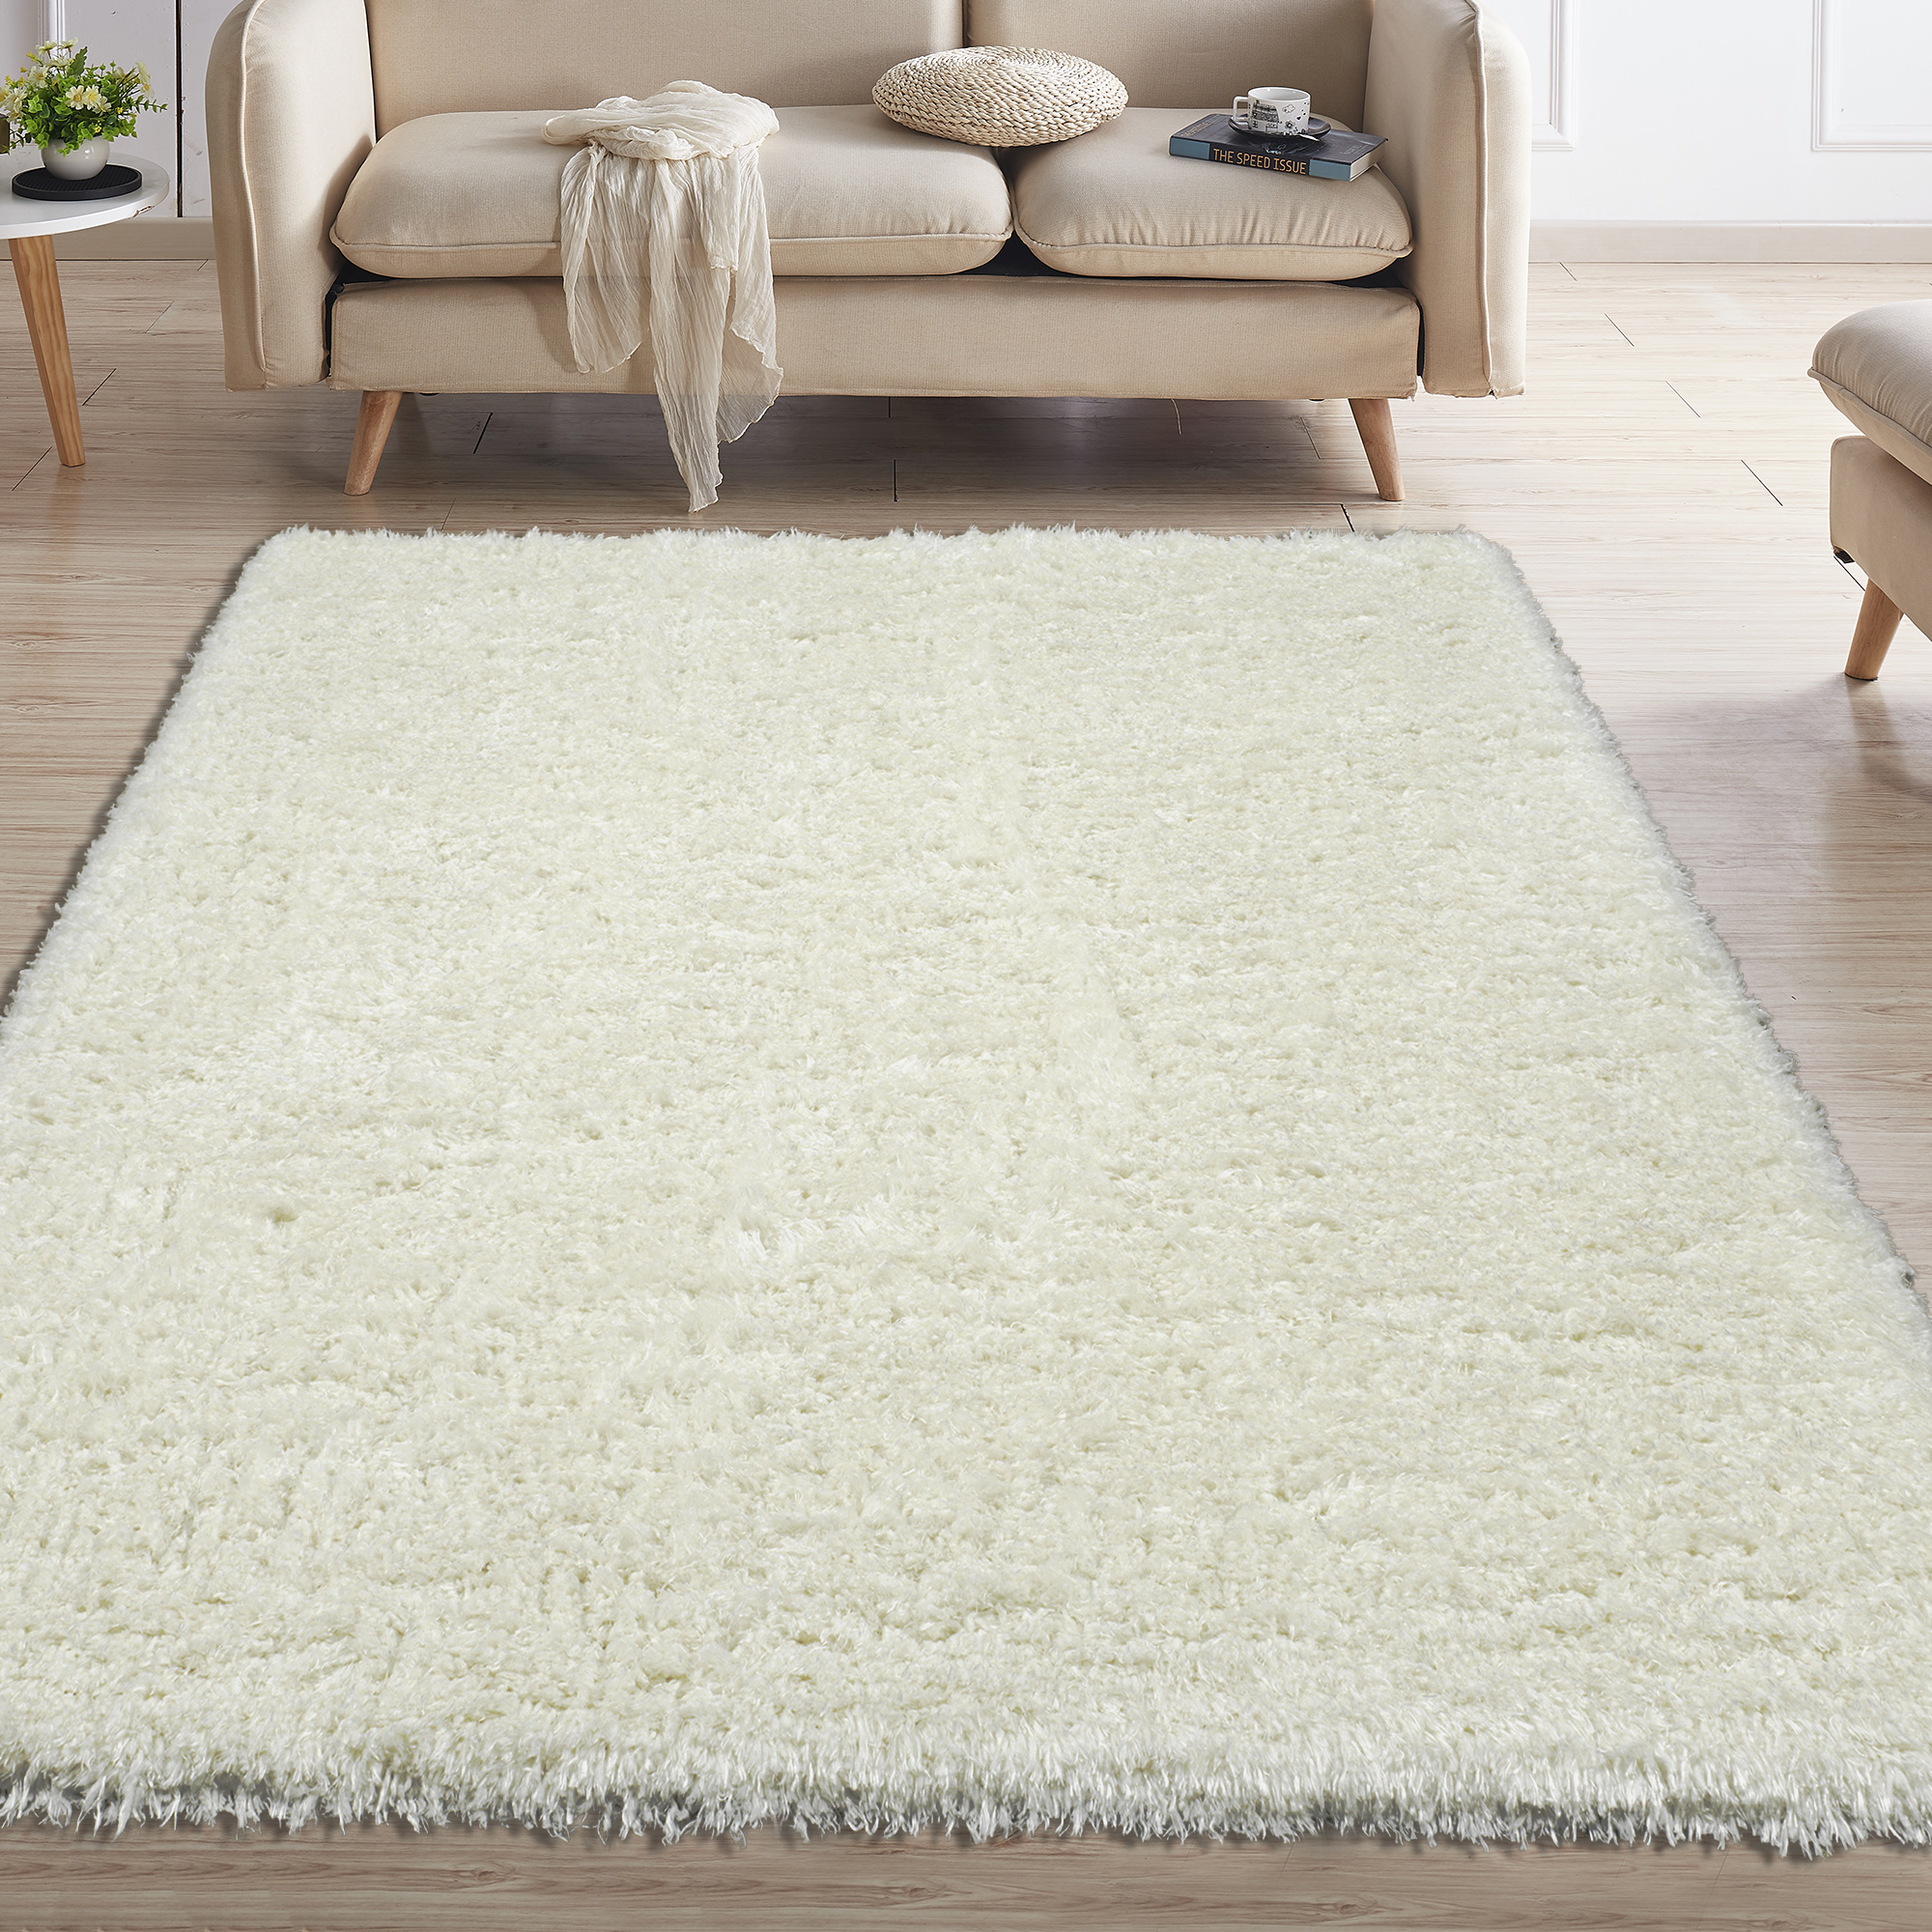 Ottomanson Flokati Collection Faux Sheepskin Shag Area Rug or Runner